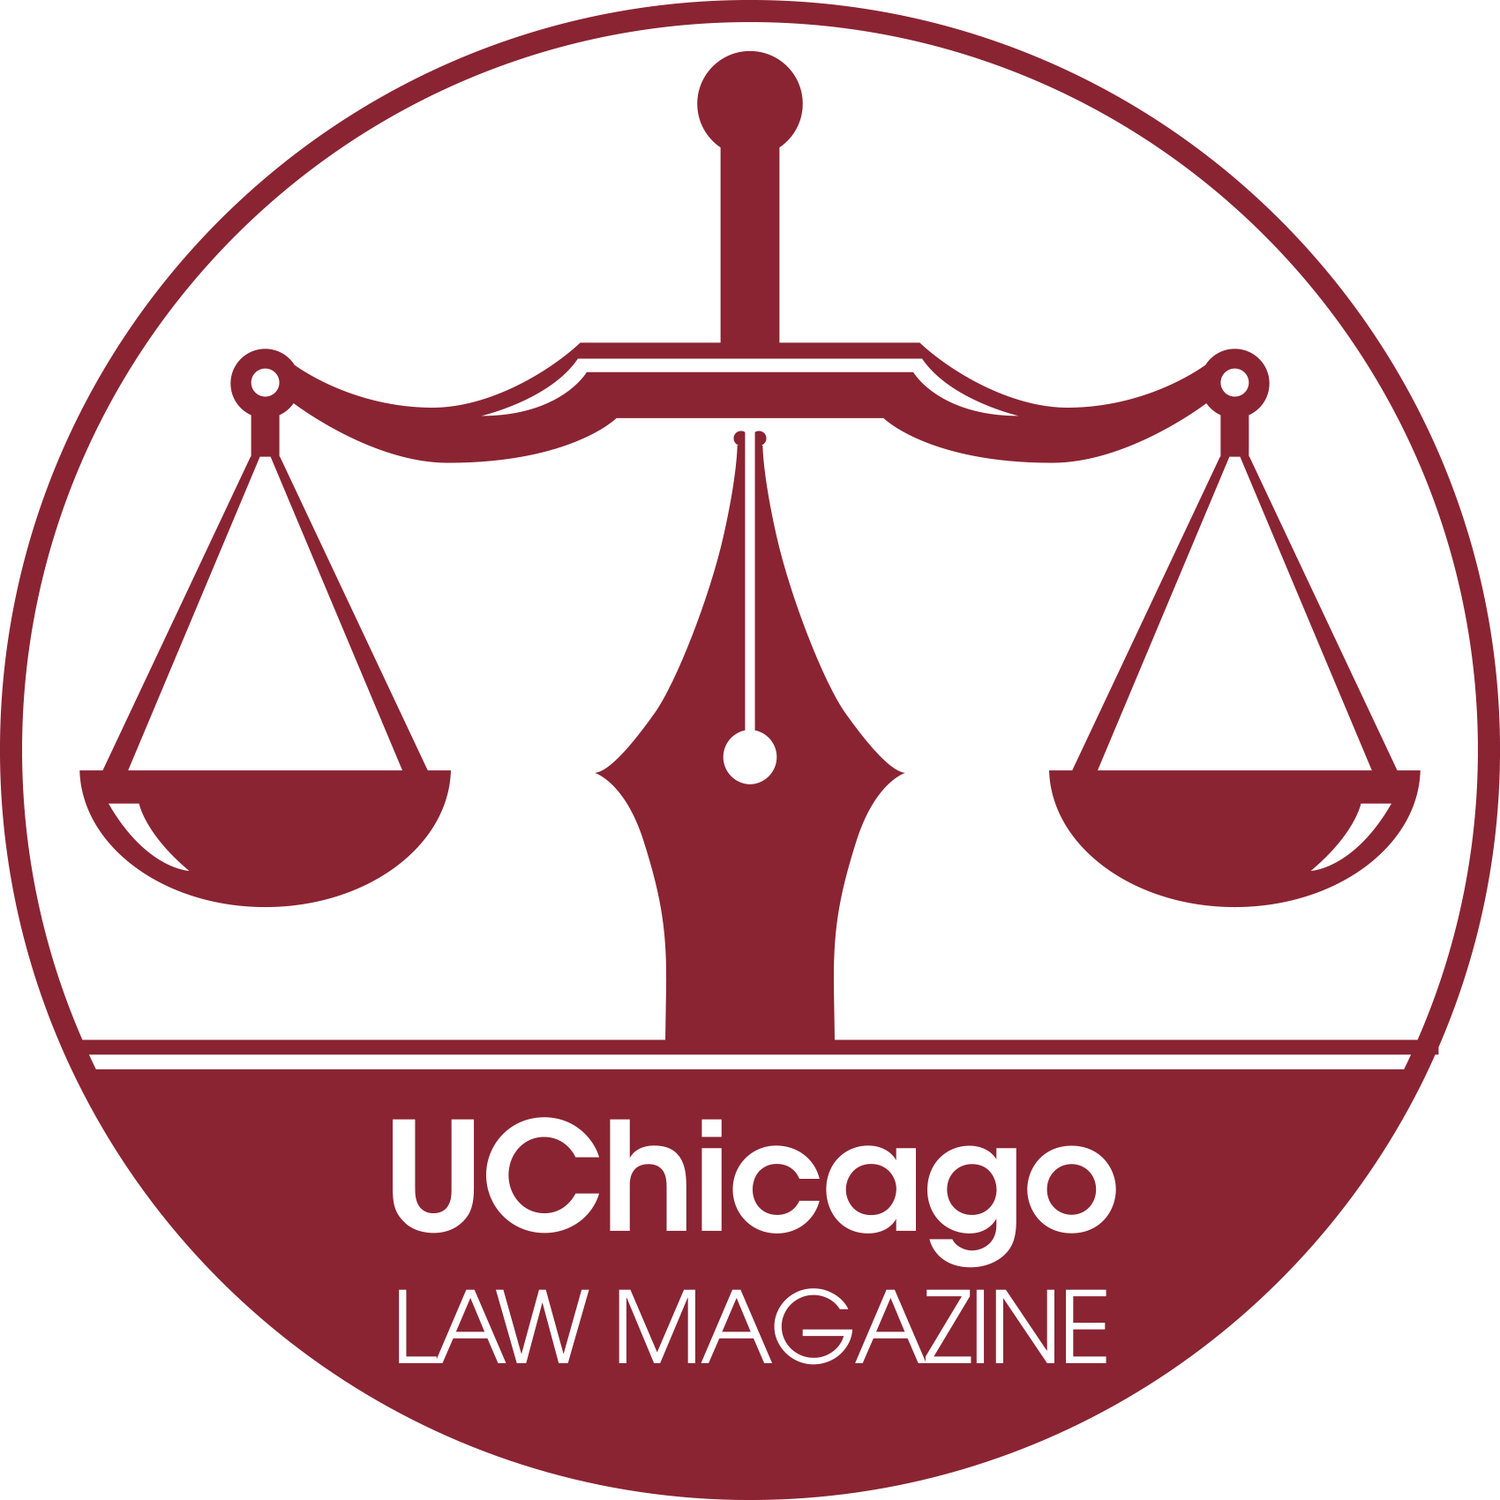 UChi Law Magazine